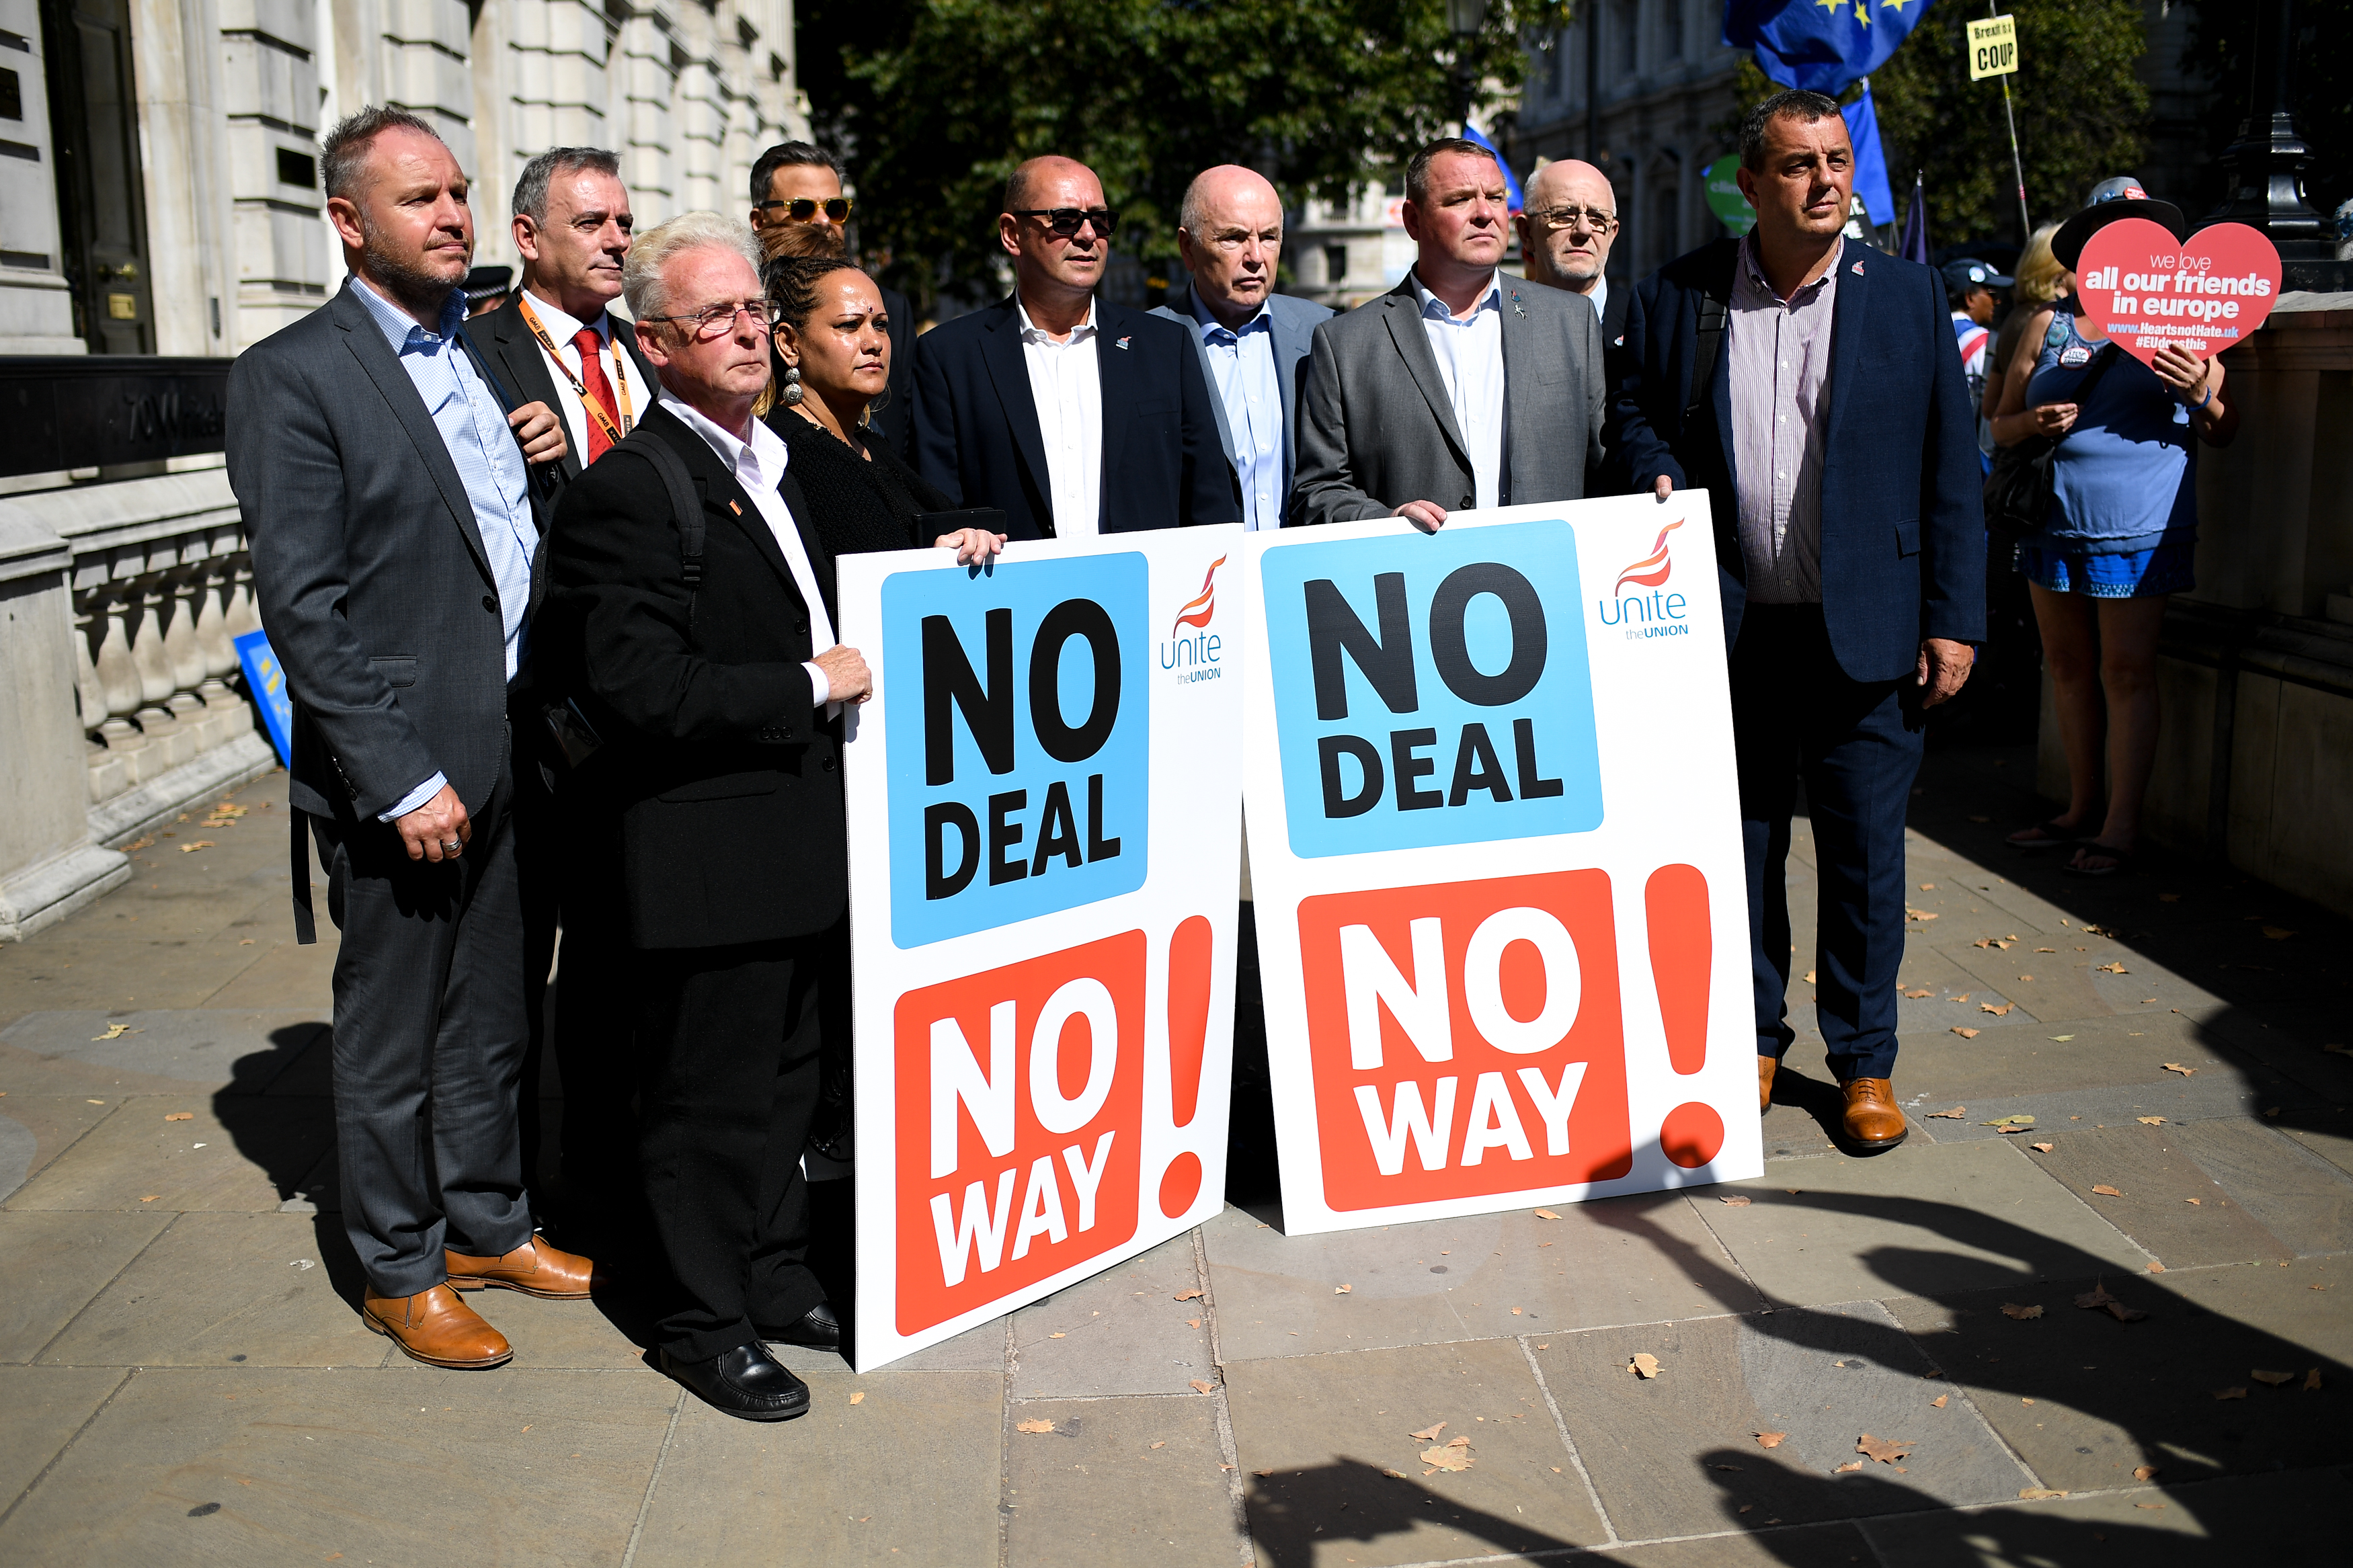 British Steel union representatives show placards as Demonstrators gather outside Cabinet Office waving Union and EU flags to protest against the Parliament suspension, Central London on August 29, 2019. Parliament will be suspended just days after MPs return to work in September - and only a few weeks before the Brexit deadline. (Photo by Alberto Pezzali/NurPhoto via Getty Images)